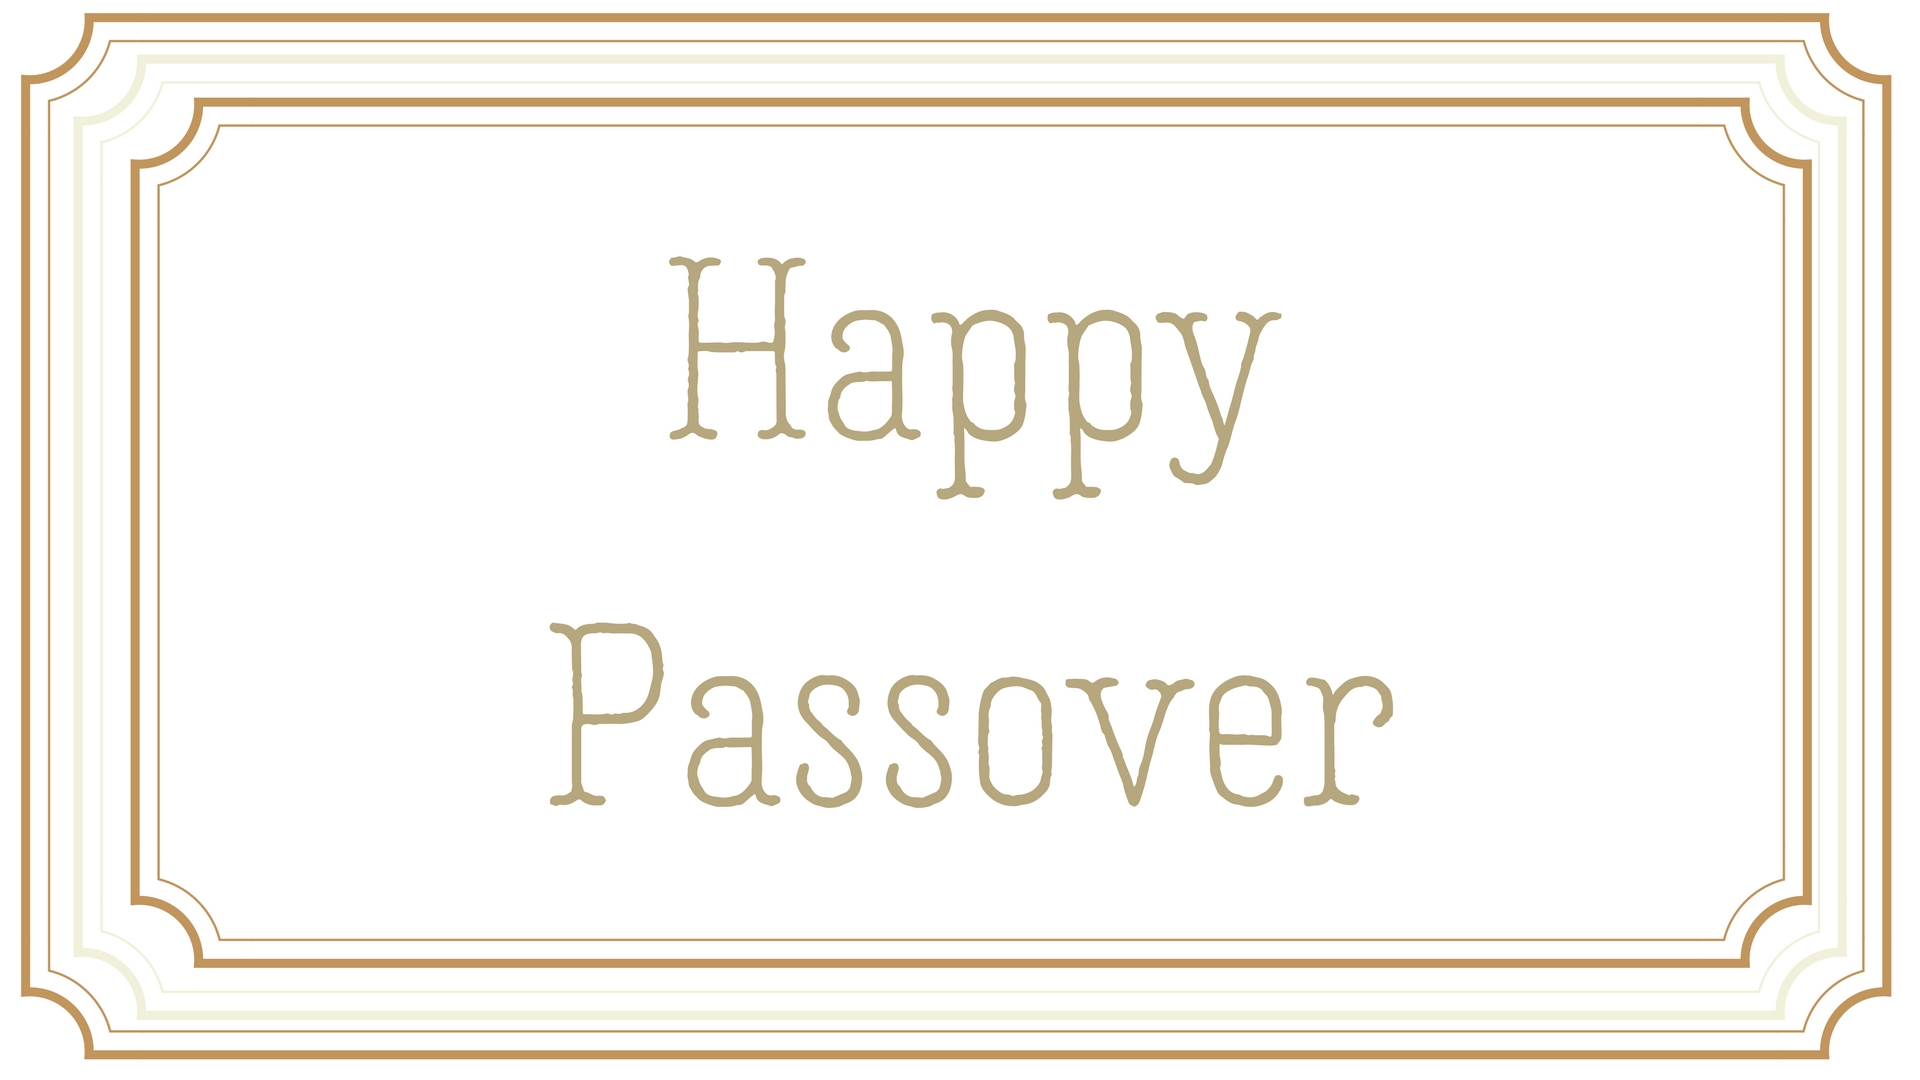 Happy Passover Rectangle Frame Greeting Card Postcard 3